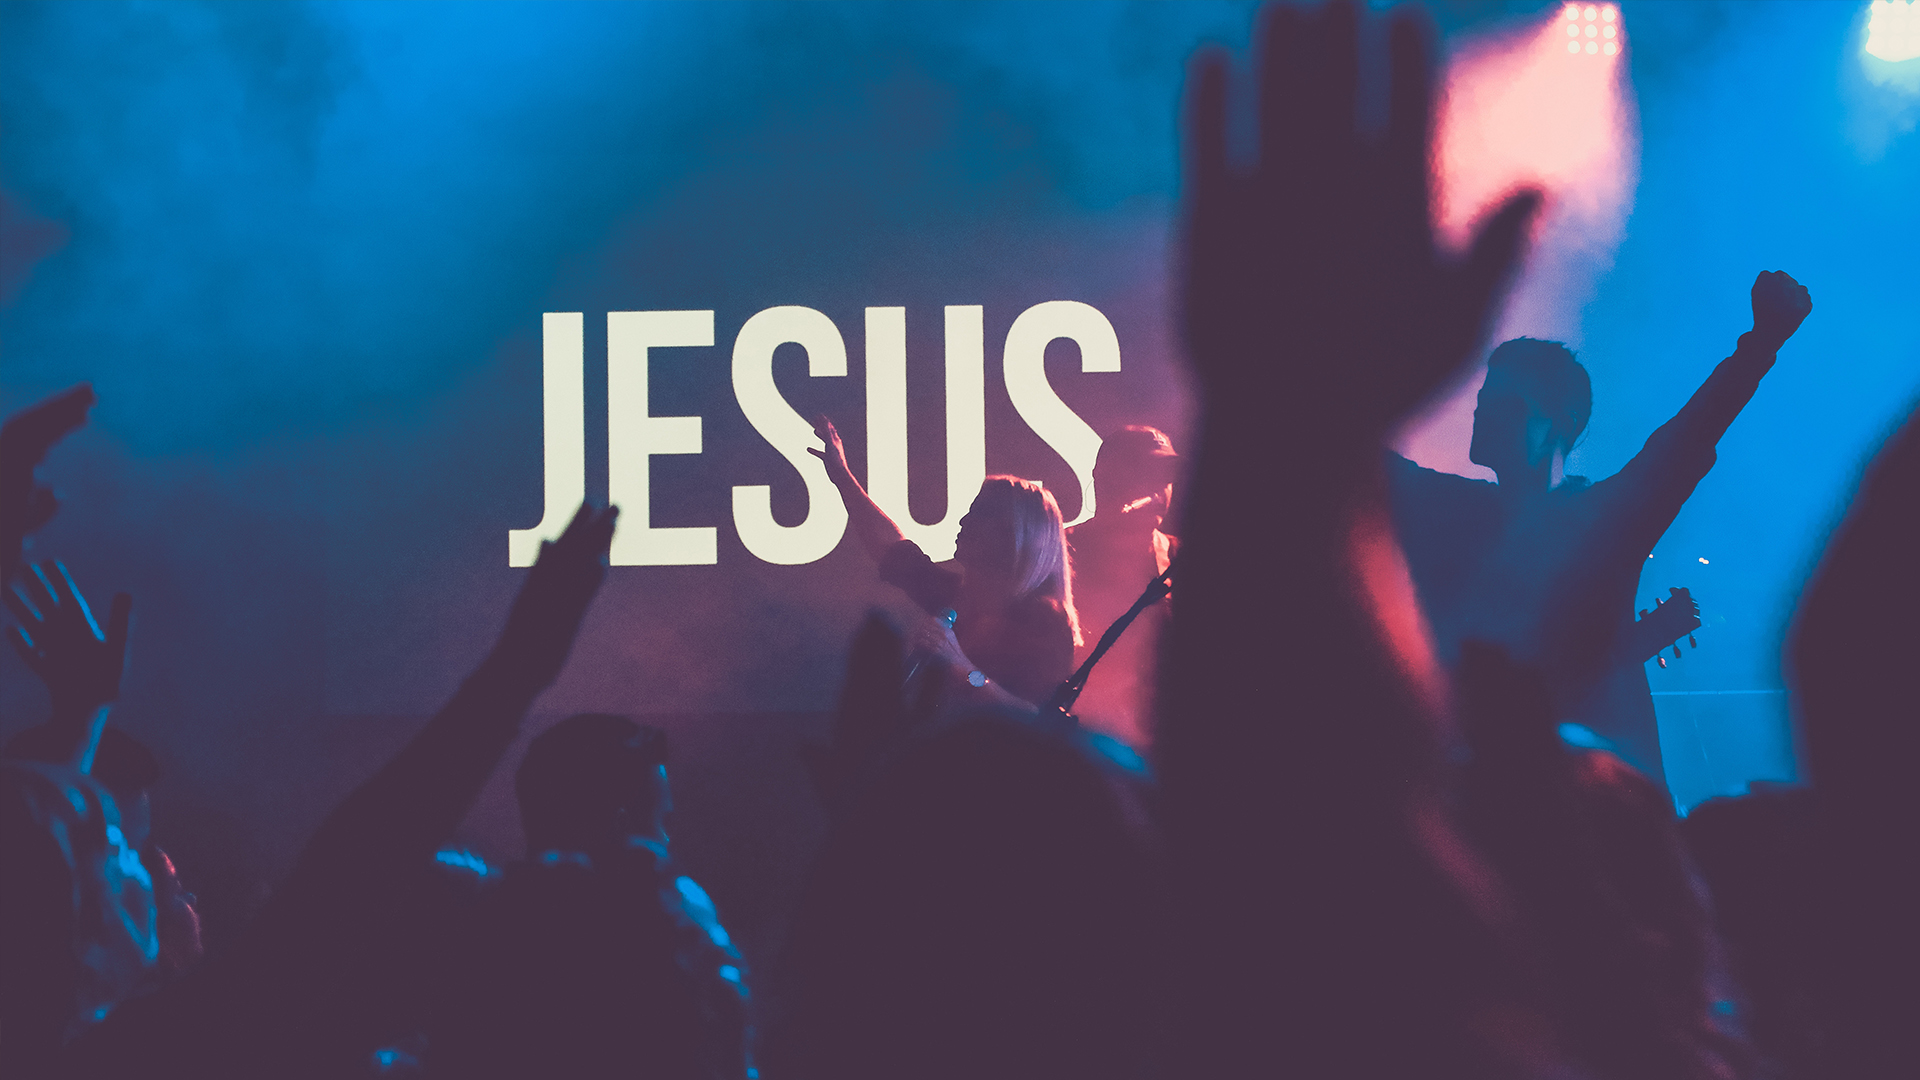 Jesus is… - our center. Everything begins and ends with Him. And when you add Jesus, students and trusted adults — you get AMAZING STUFF! Join us Sunday mornings at 9:30 to learn more.